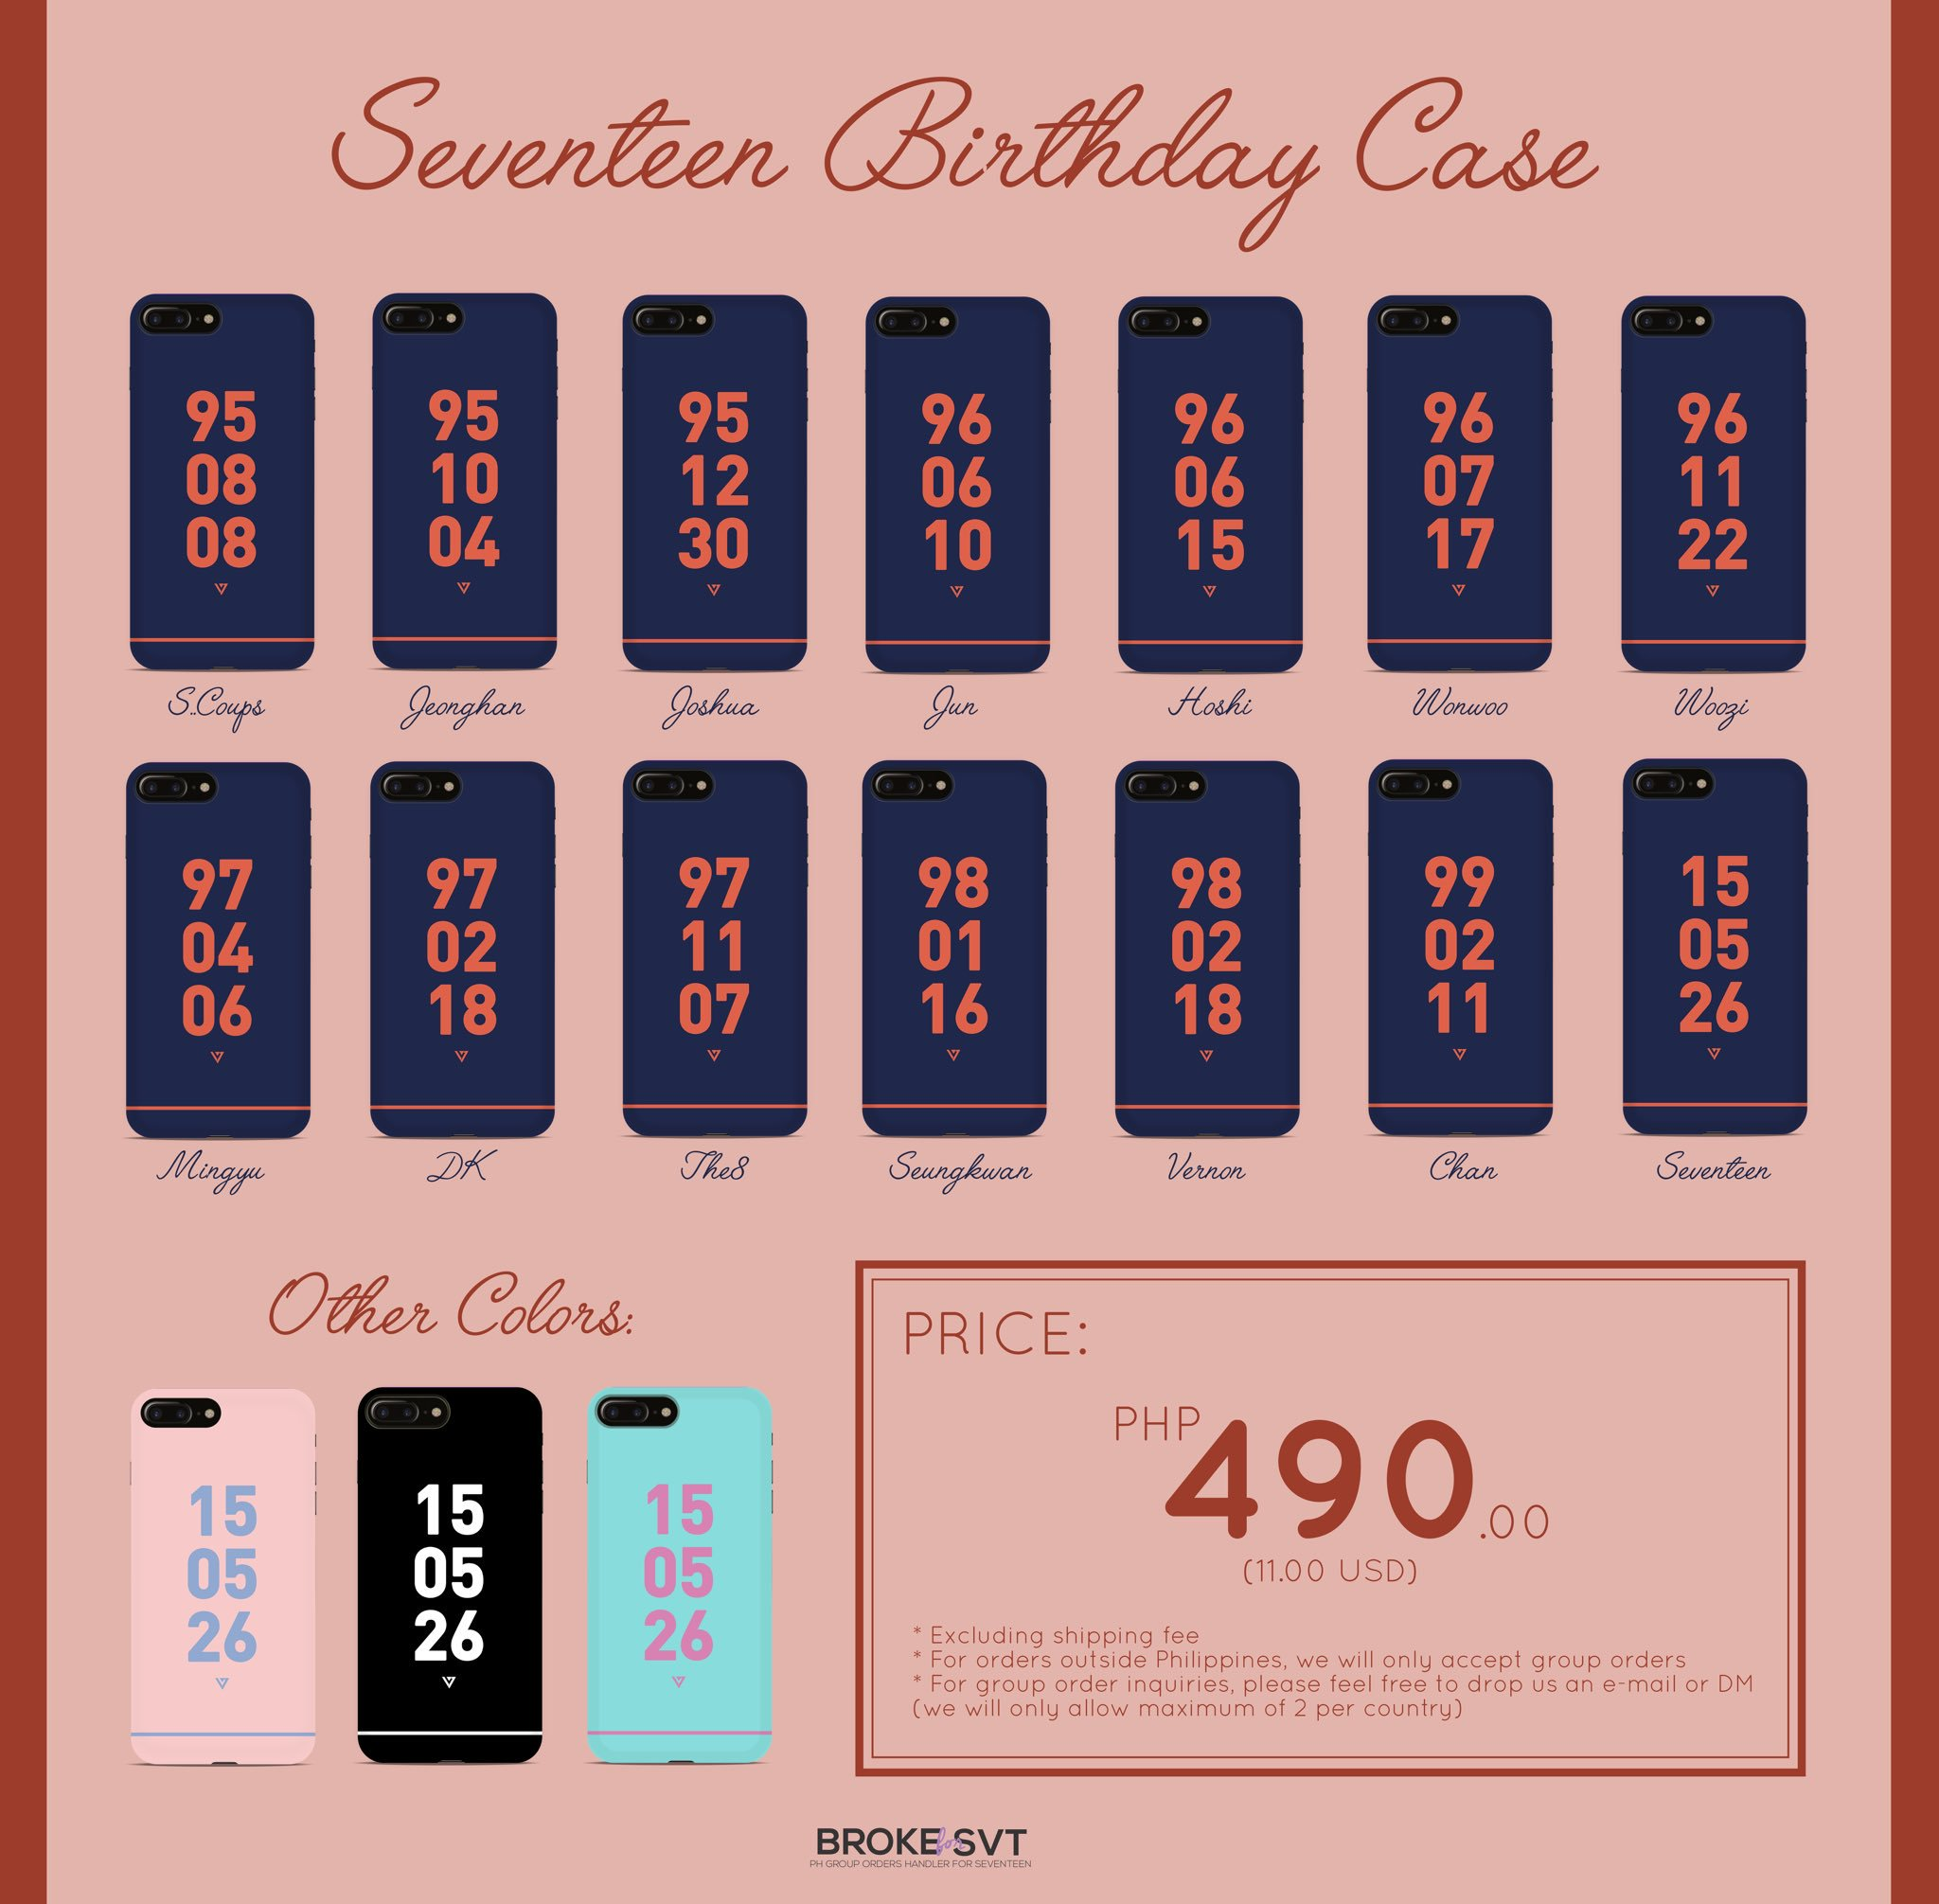 ⭐️ SEVENTEEN BIRTHDAY CASE ⭐️   More details and order form: https://t.co/xVuKhqMUjt https://t.co/0ZwBofMcMc